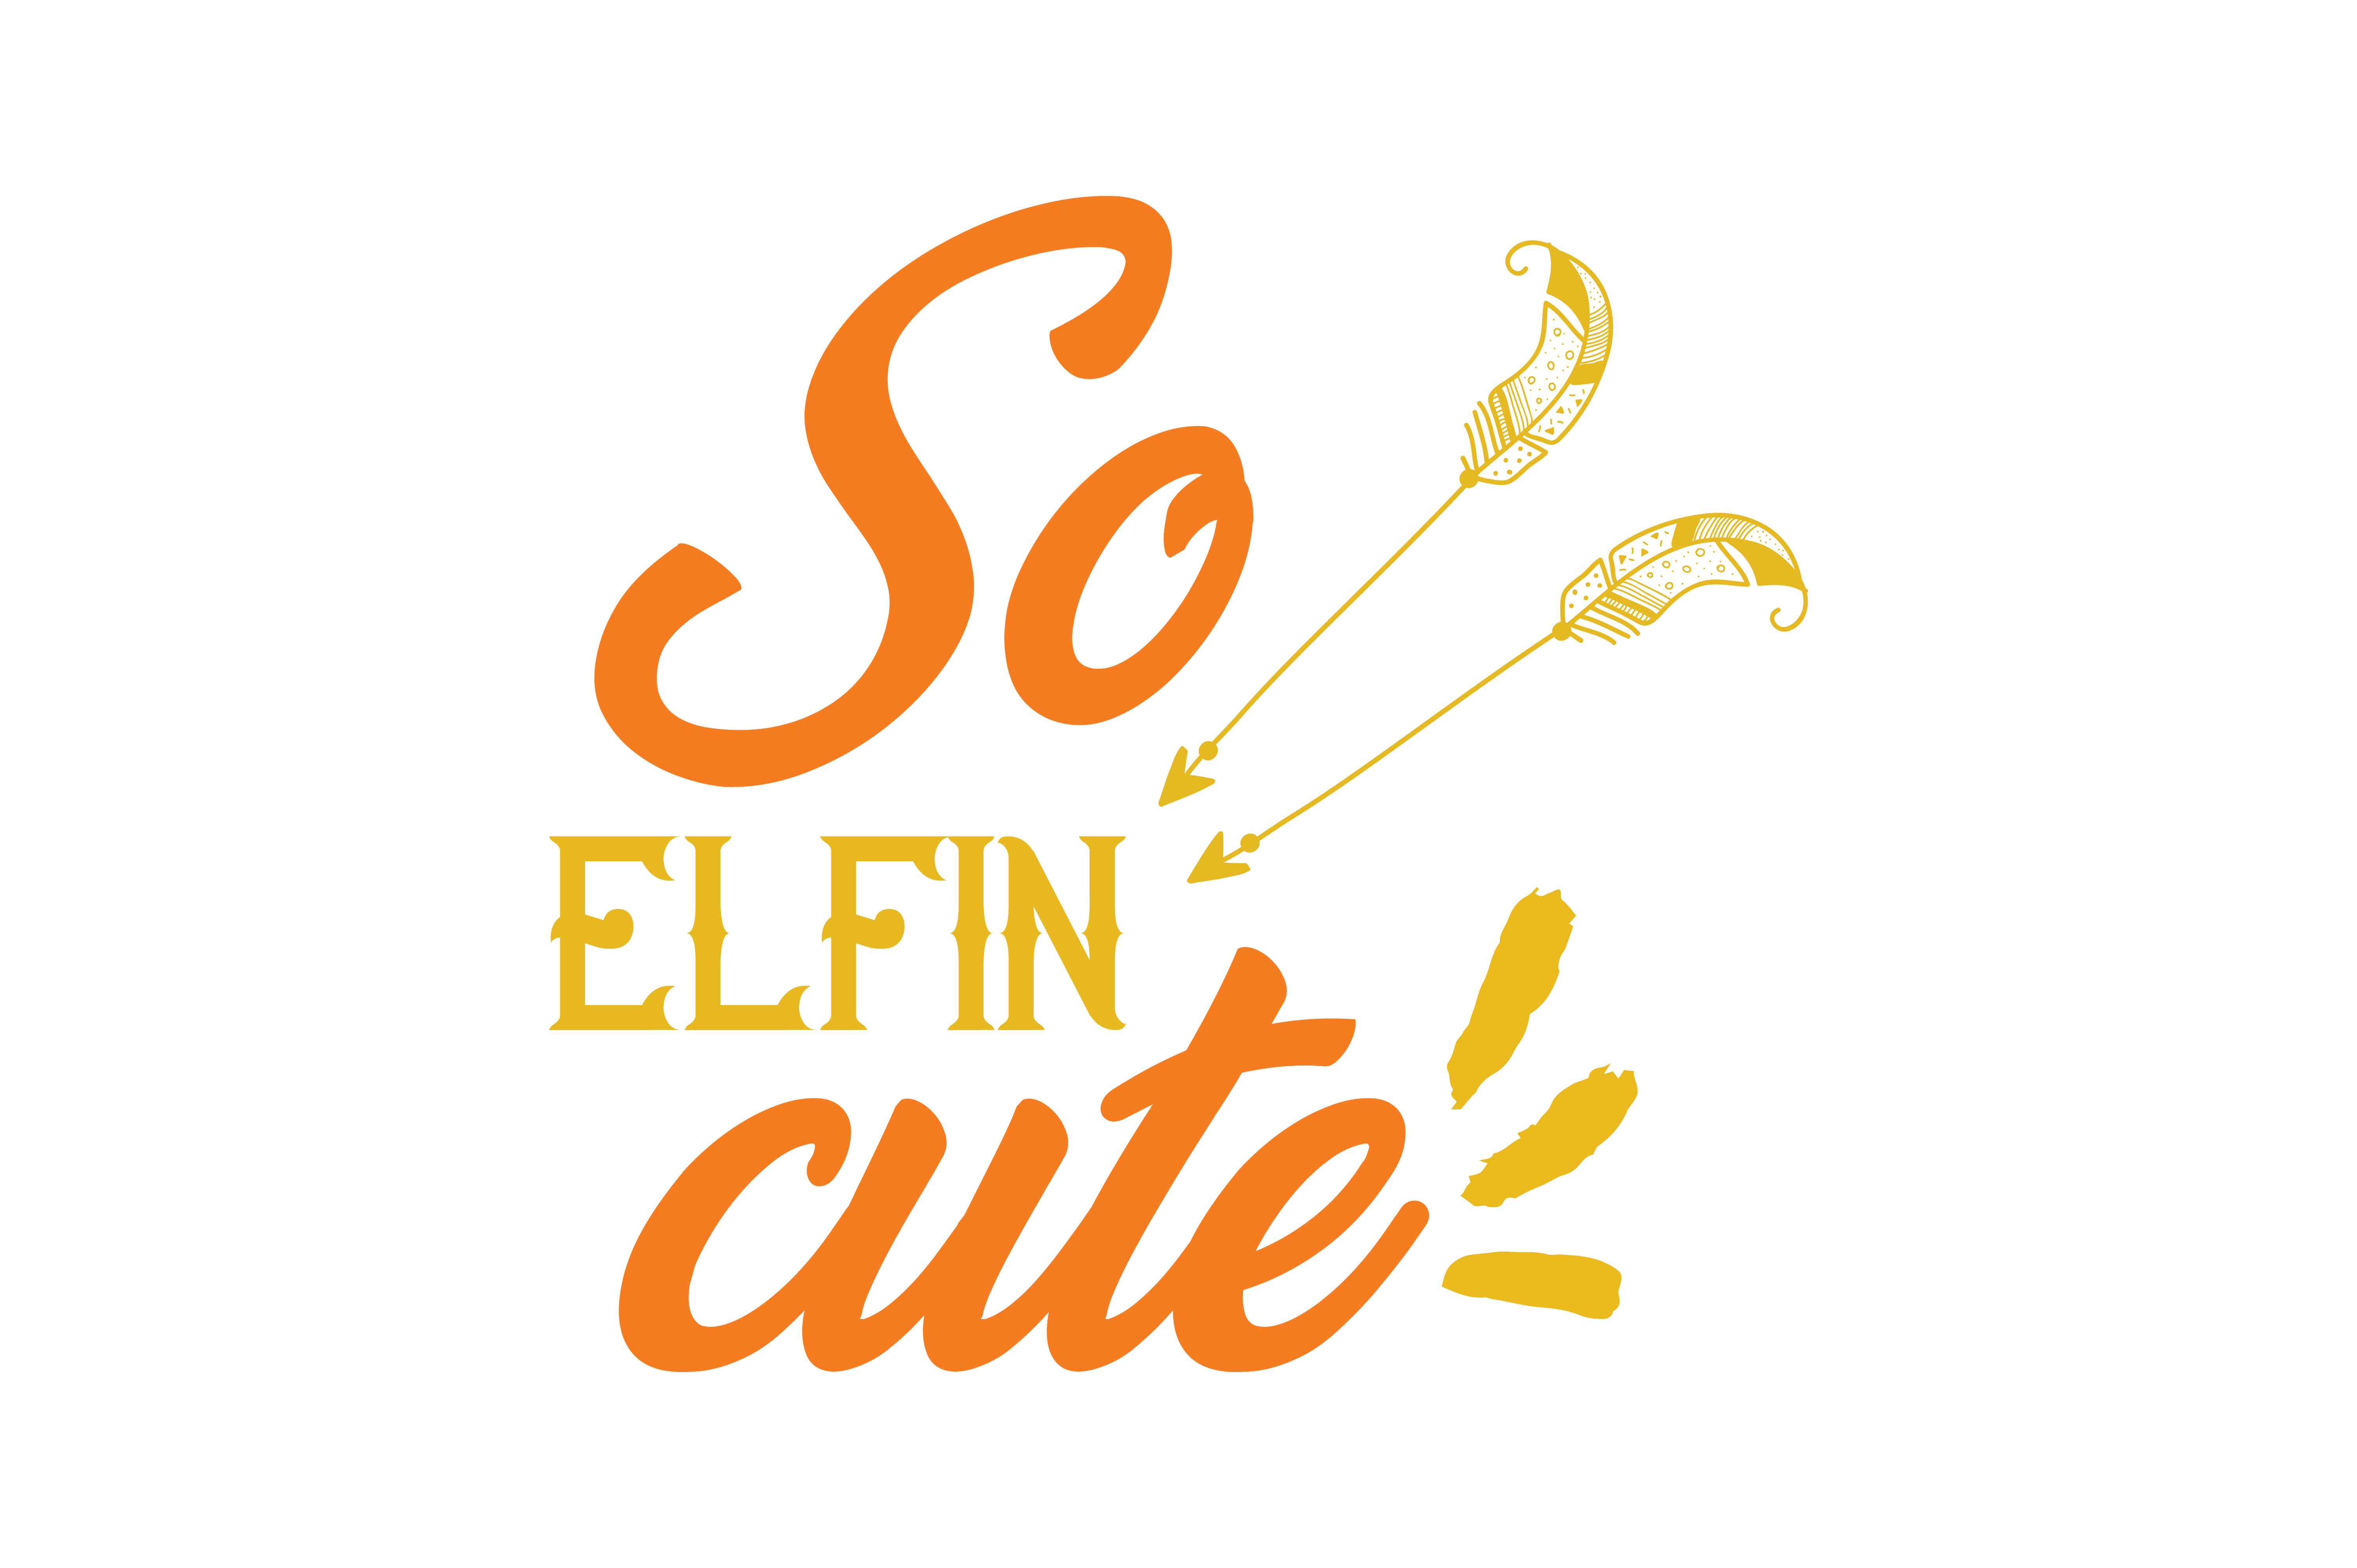 Download Free So Elfin Cute Quote Svg Cut Graphic By Thelucky Creative Fabrica for Cricut Explore, Silhouette and other cutting machines.